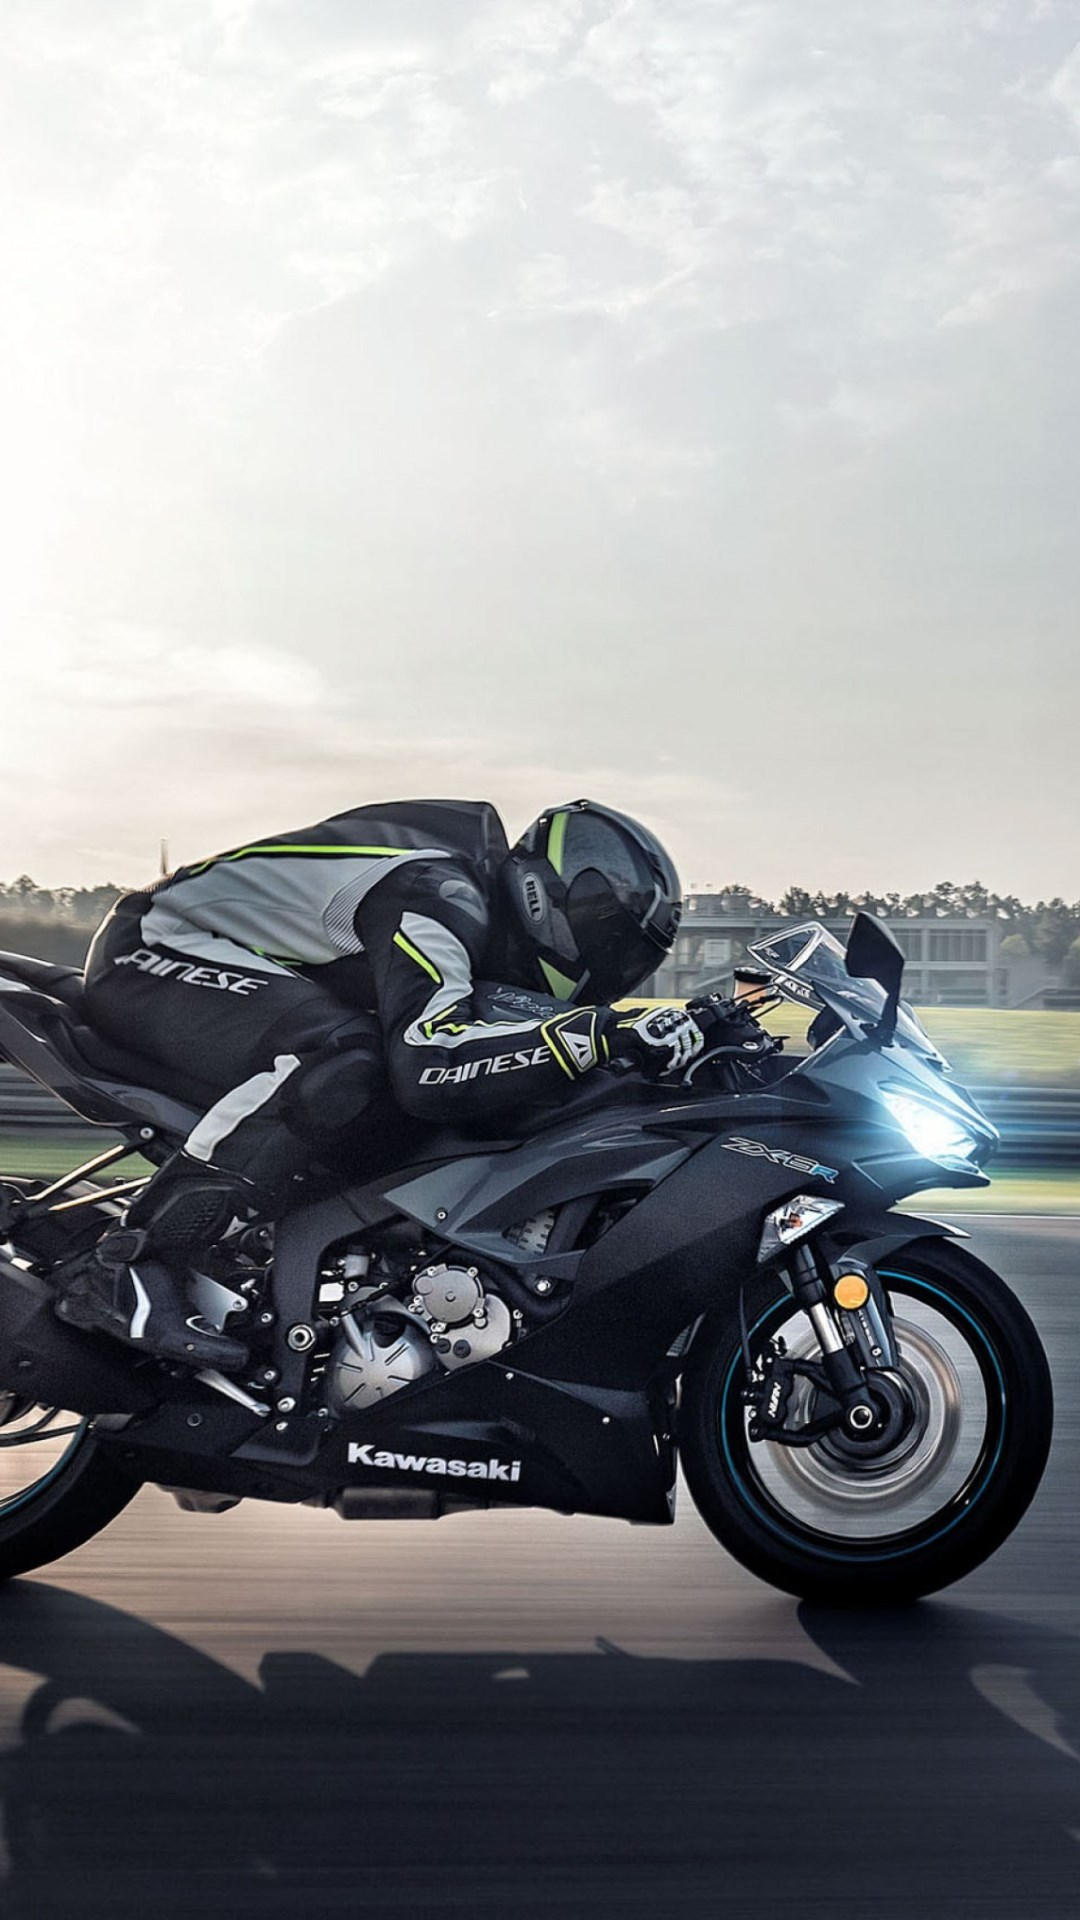 Kawasaki Ninja ZX 6R in motion wallpaper 1080x1920